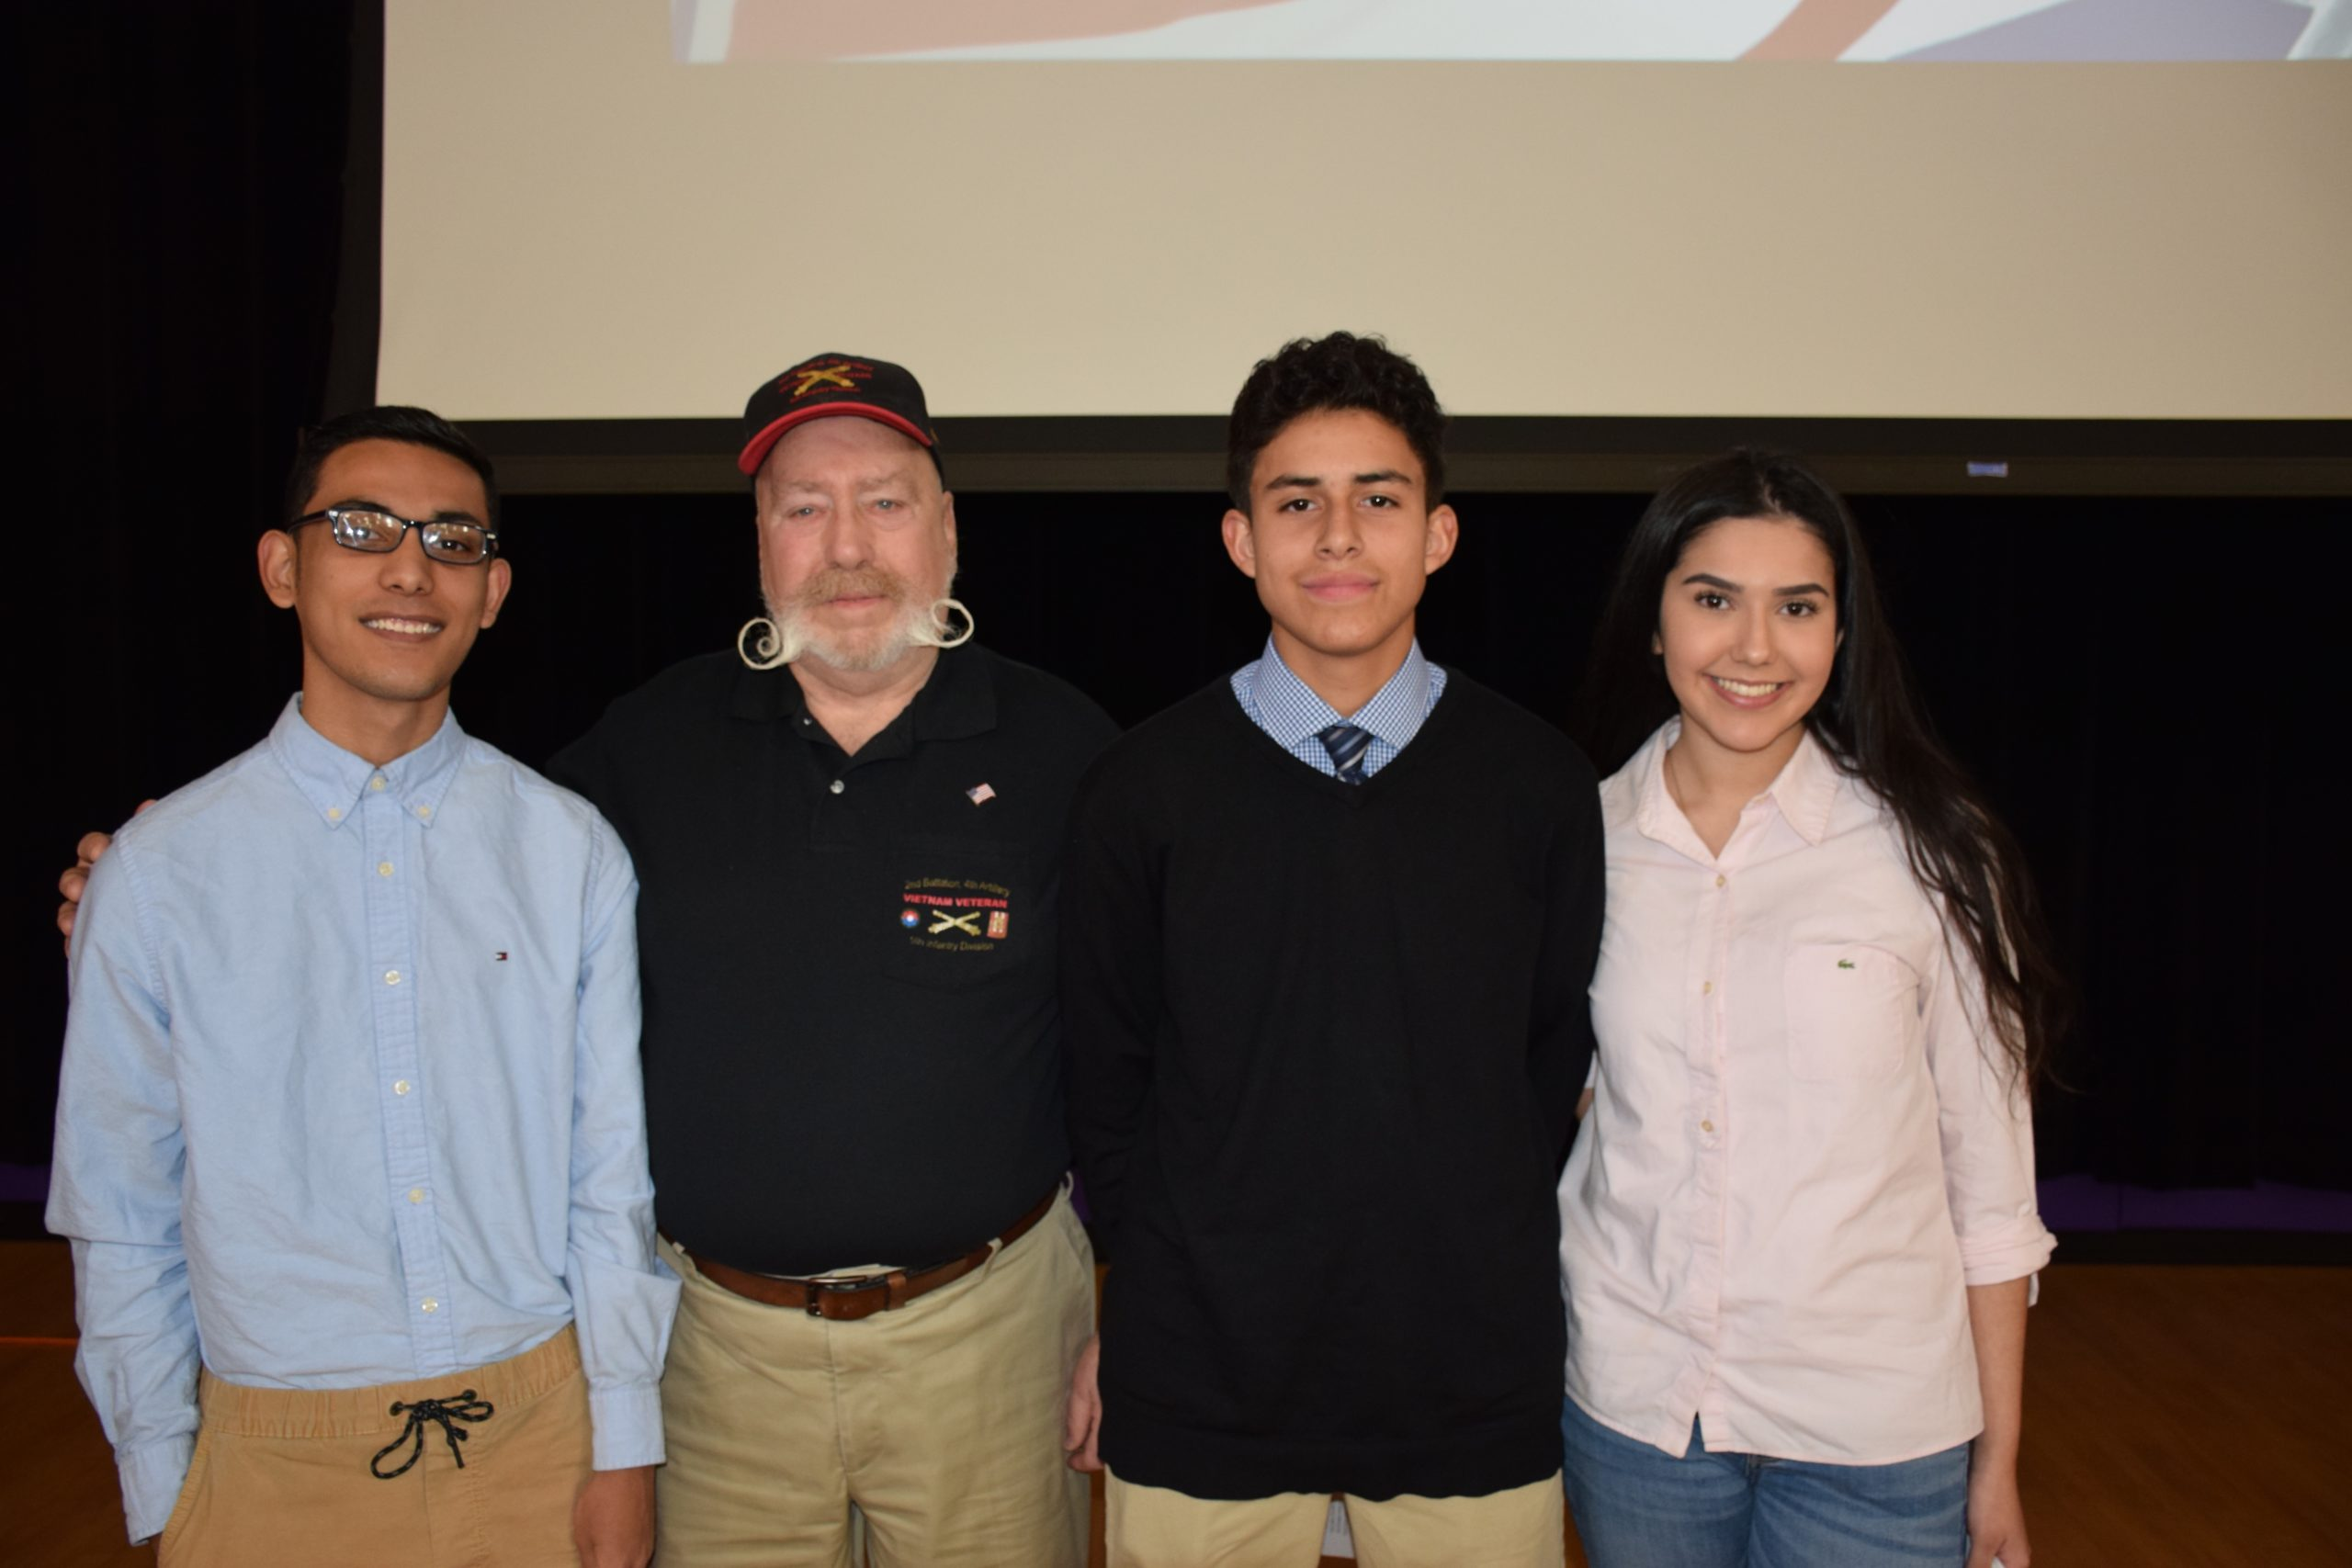 Hampton Bays High School students honored U.S. Navy veteran Dick Crescenzo during a flag ceremony on December 6. Among the students at the ceremony were three students who will be entering the military following graduation. From left, Pedro Robles (U.S. Army), Mr. Crescenzo, Kyle Rodriguez (U.S. Air Force) and Sophia Gonzalez (U.S. Air Force).